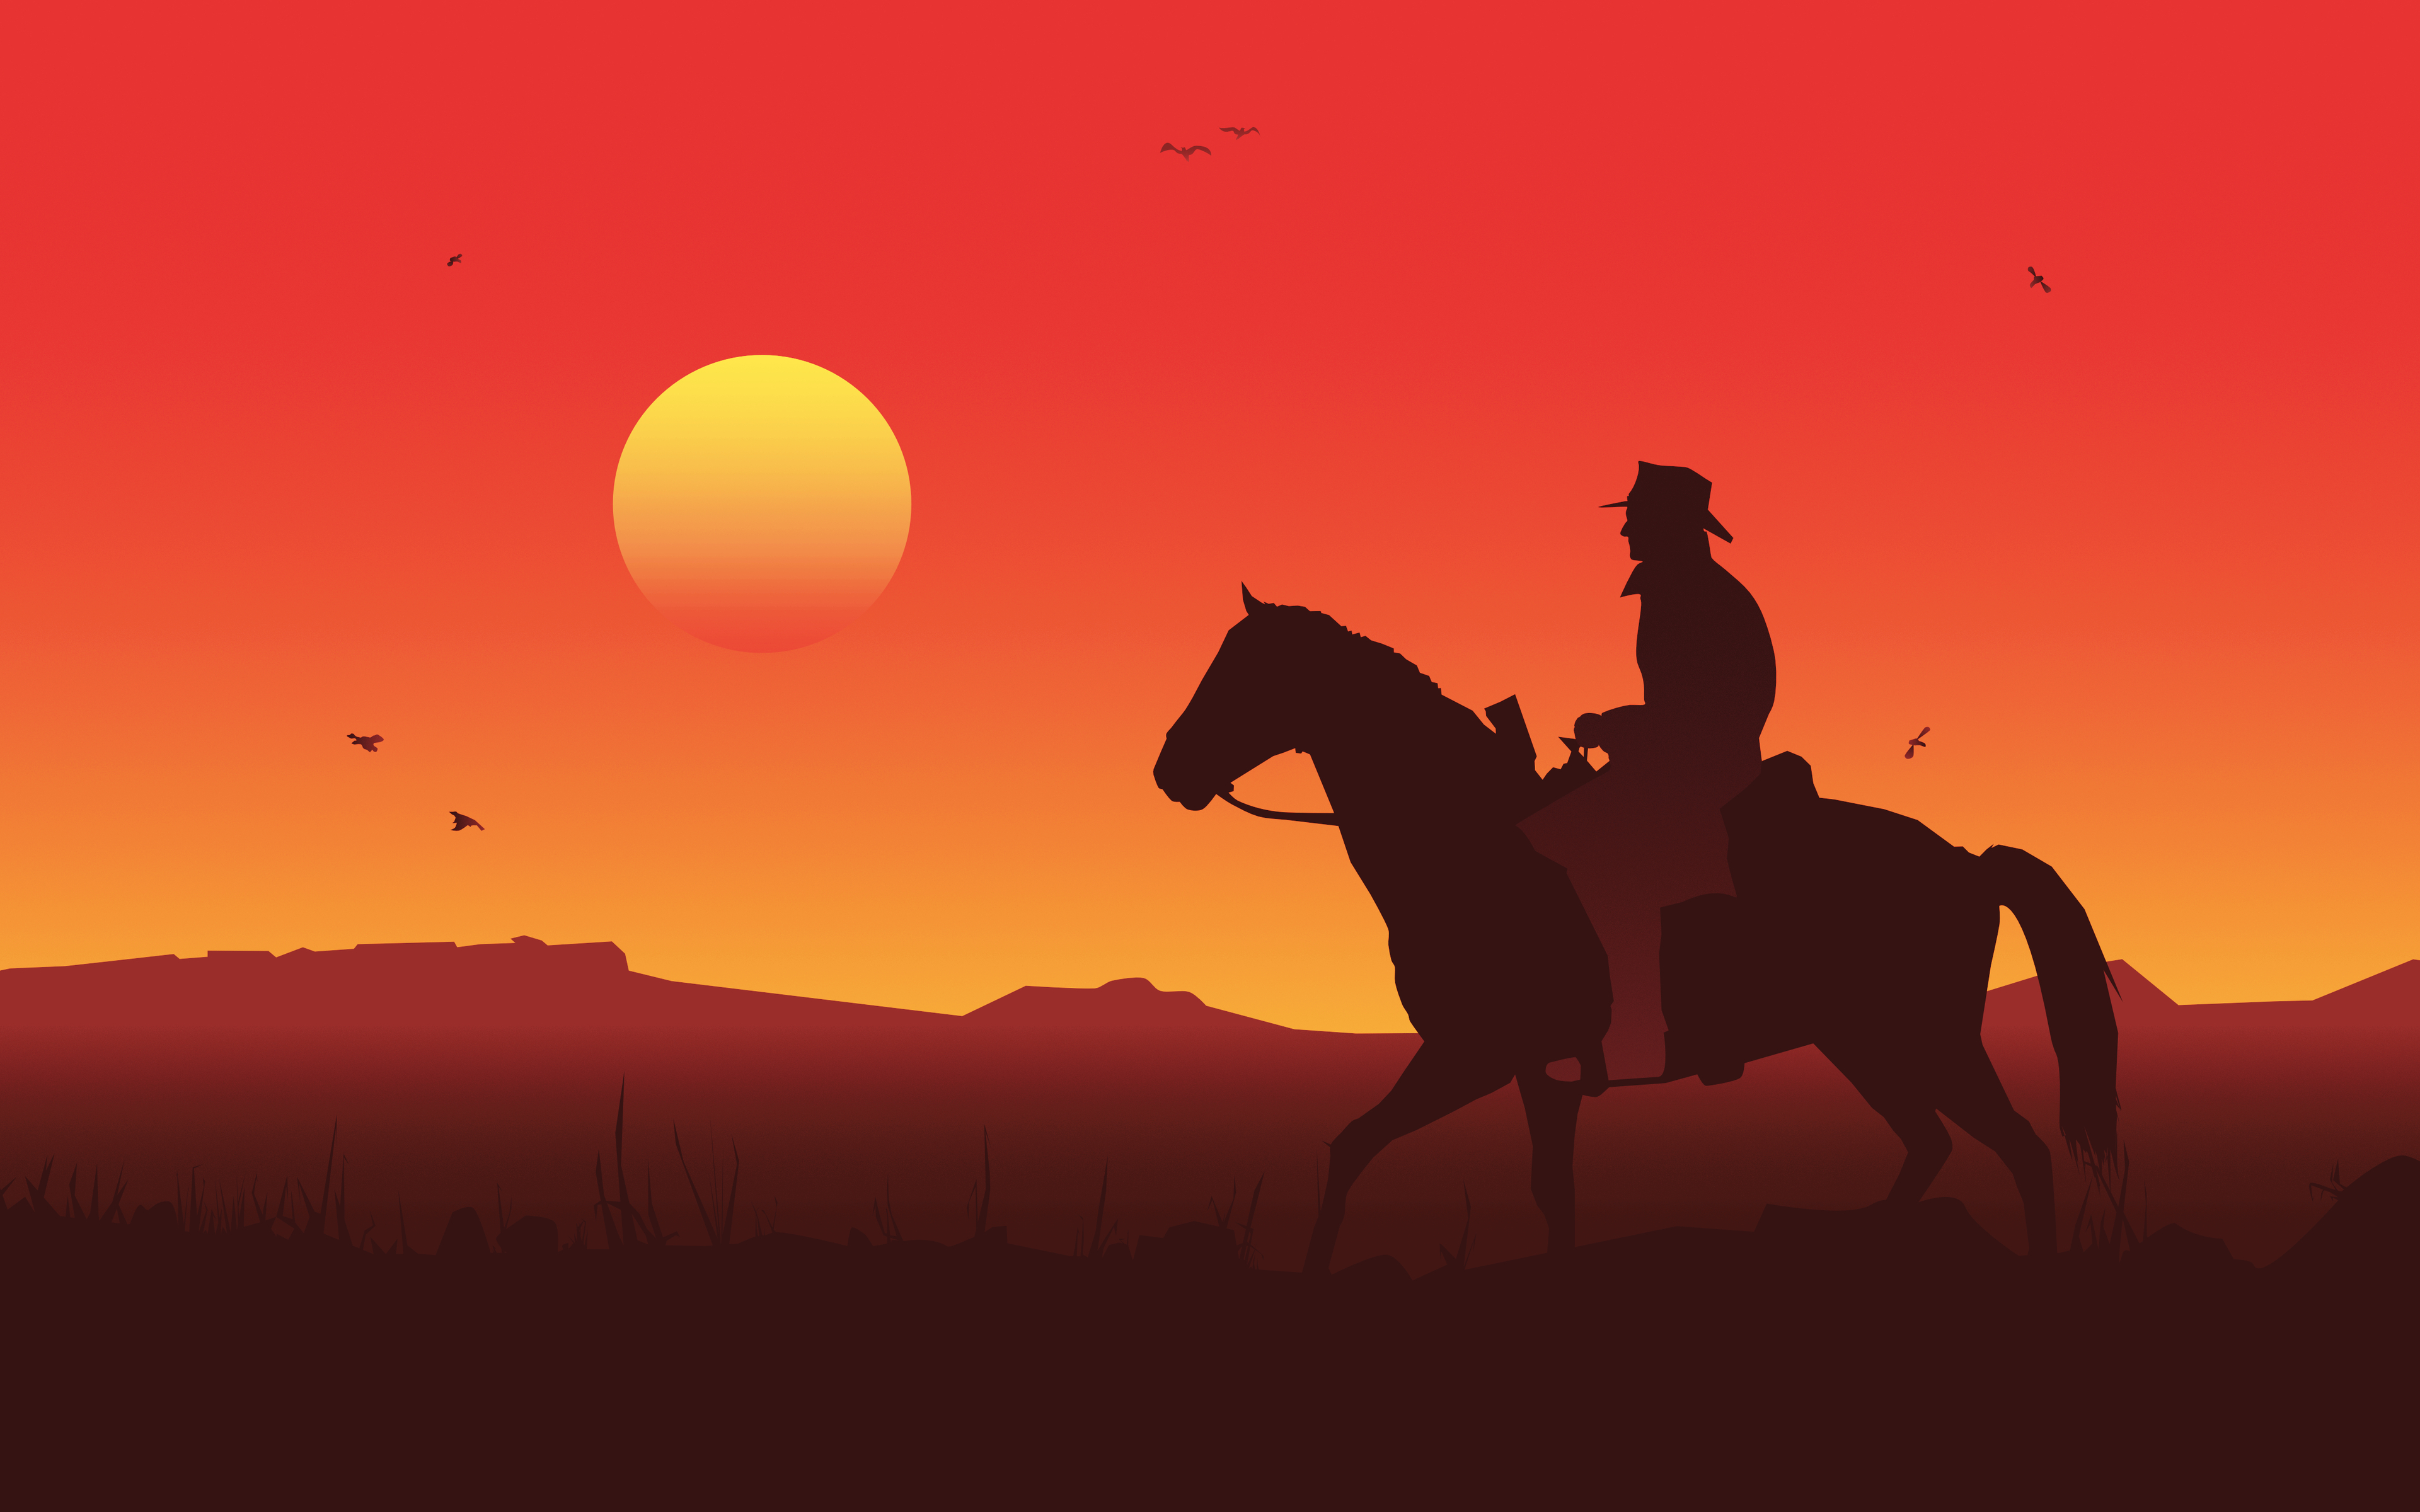 red-dead-redemption-2-illustration-5k-72.jpg